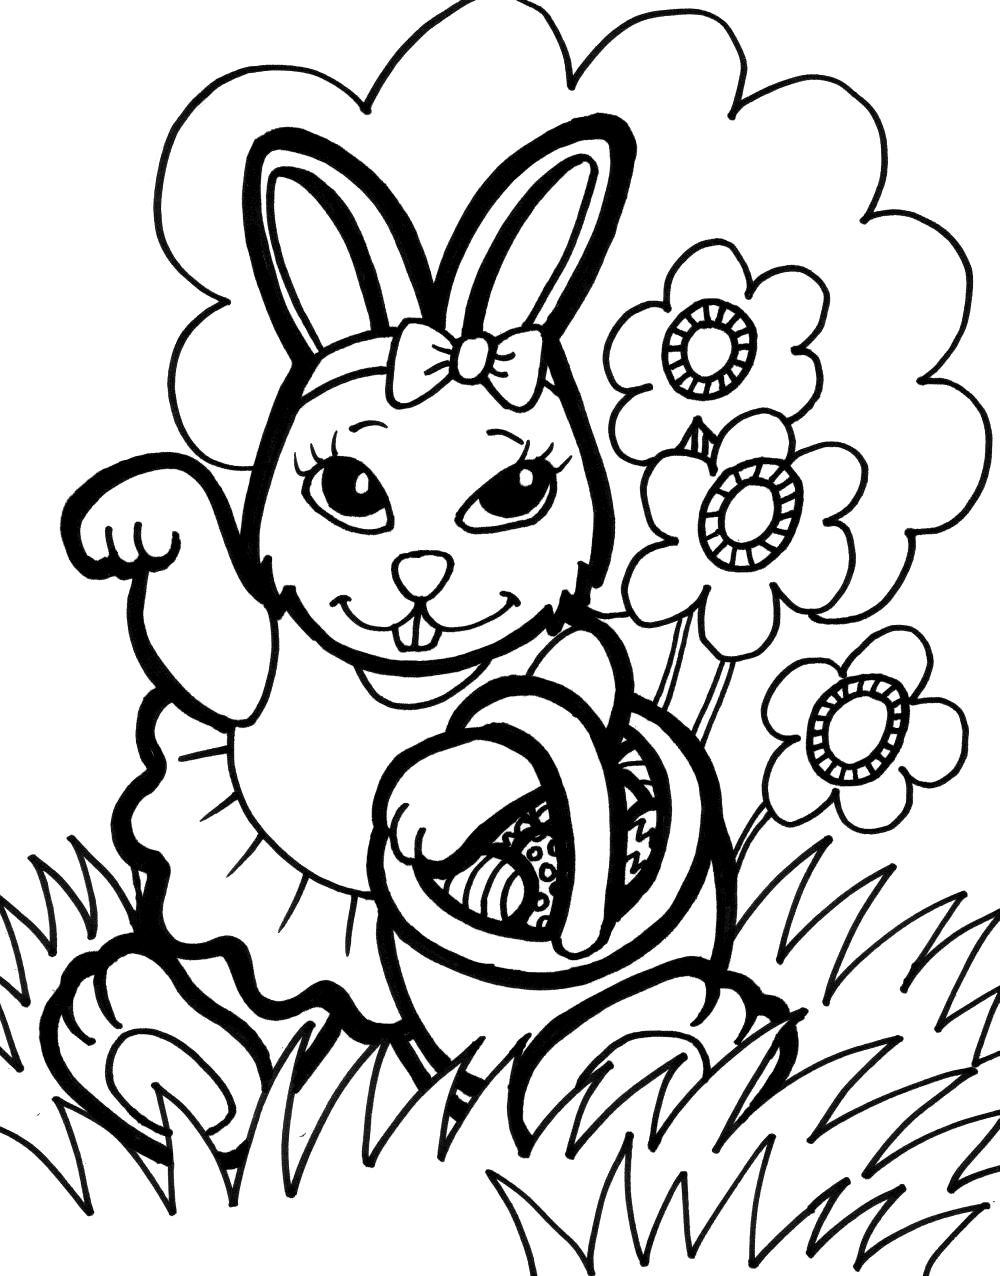 rabbit coloring pictures bunny coloring pages best coloring pages for kids pictures coloring rabbit